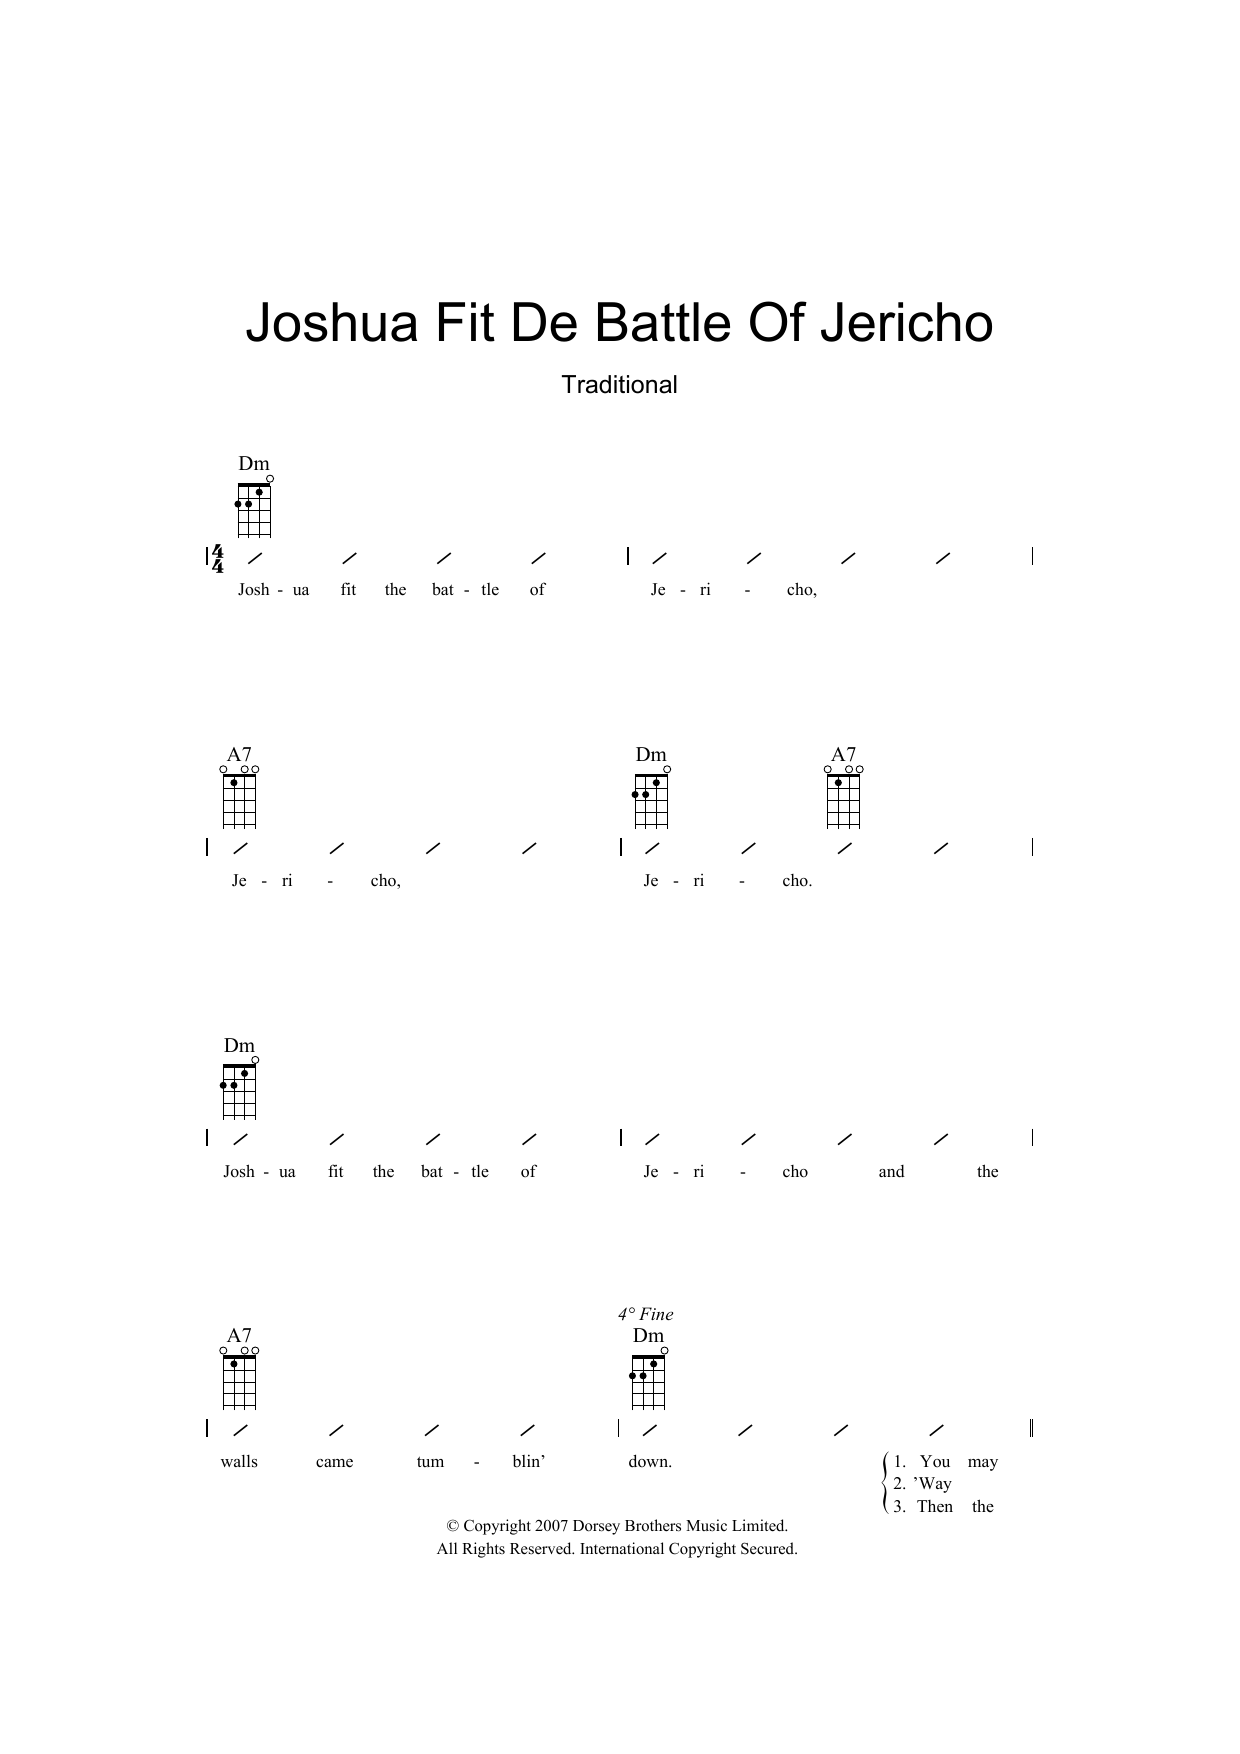 Traditional - Joshua Fit De Battle Of Jericho